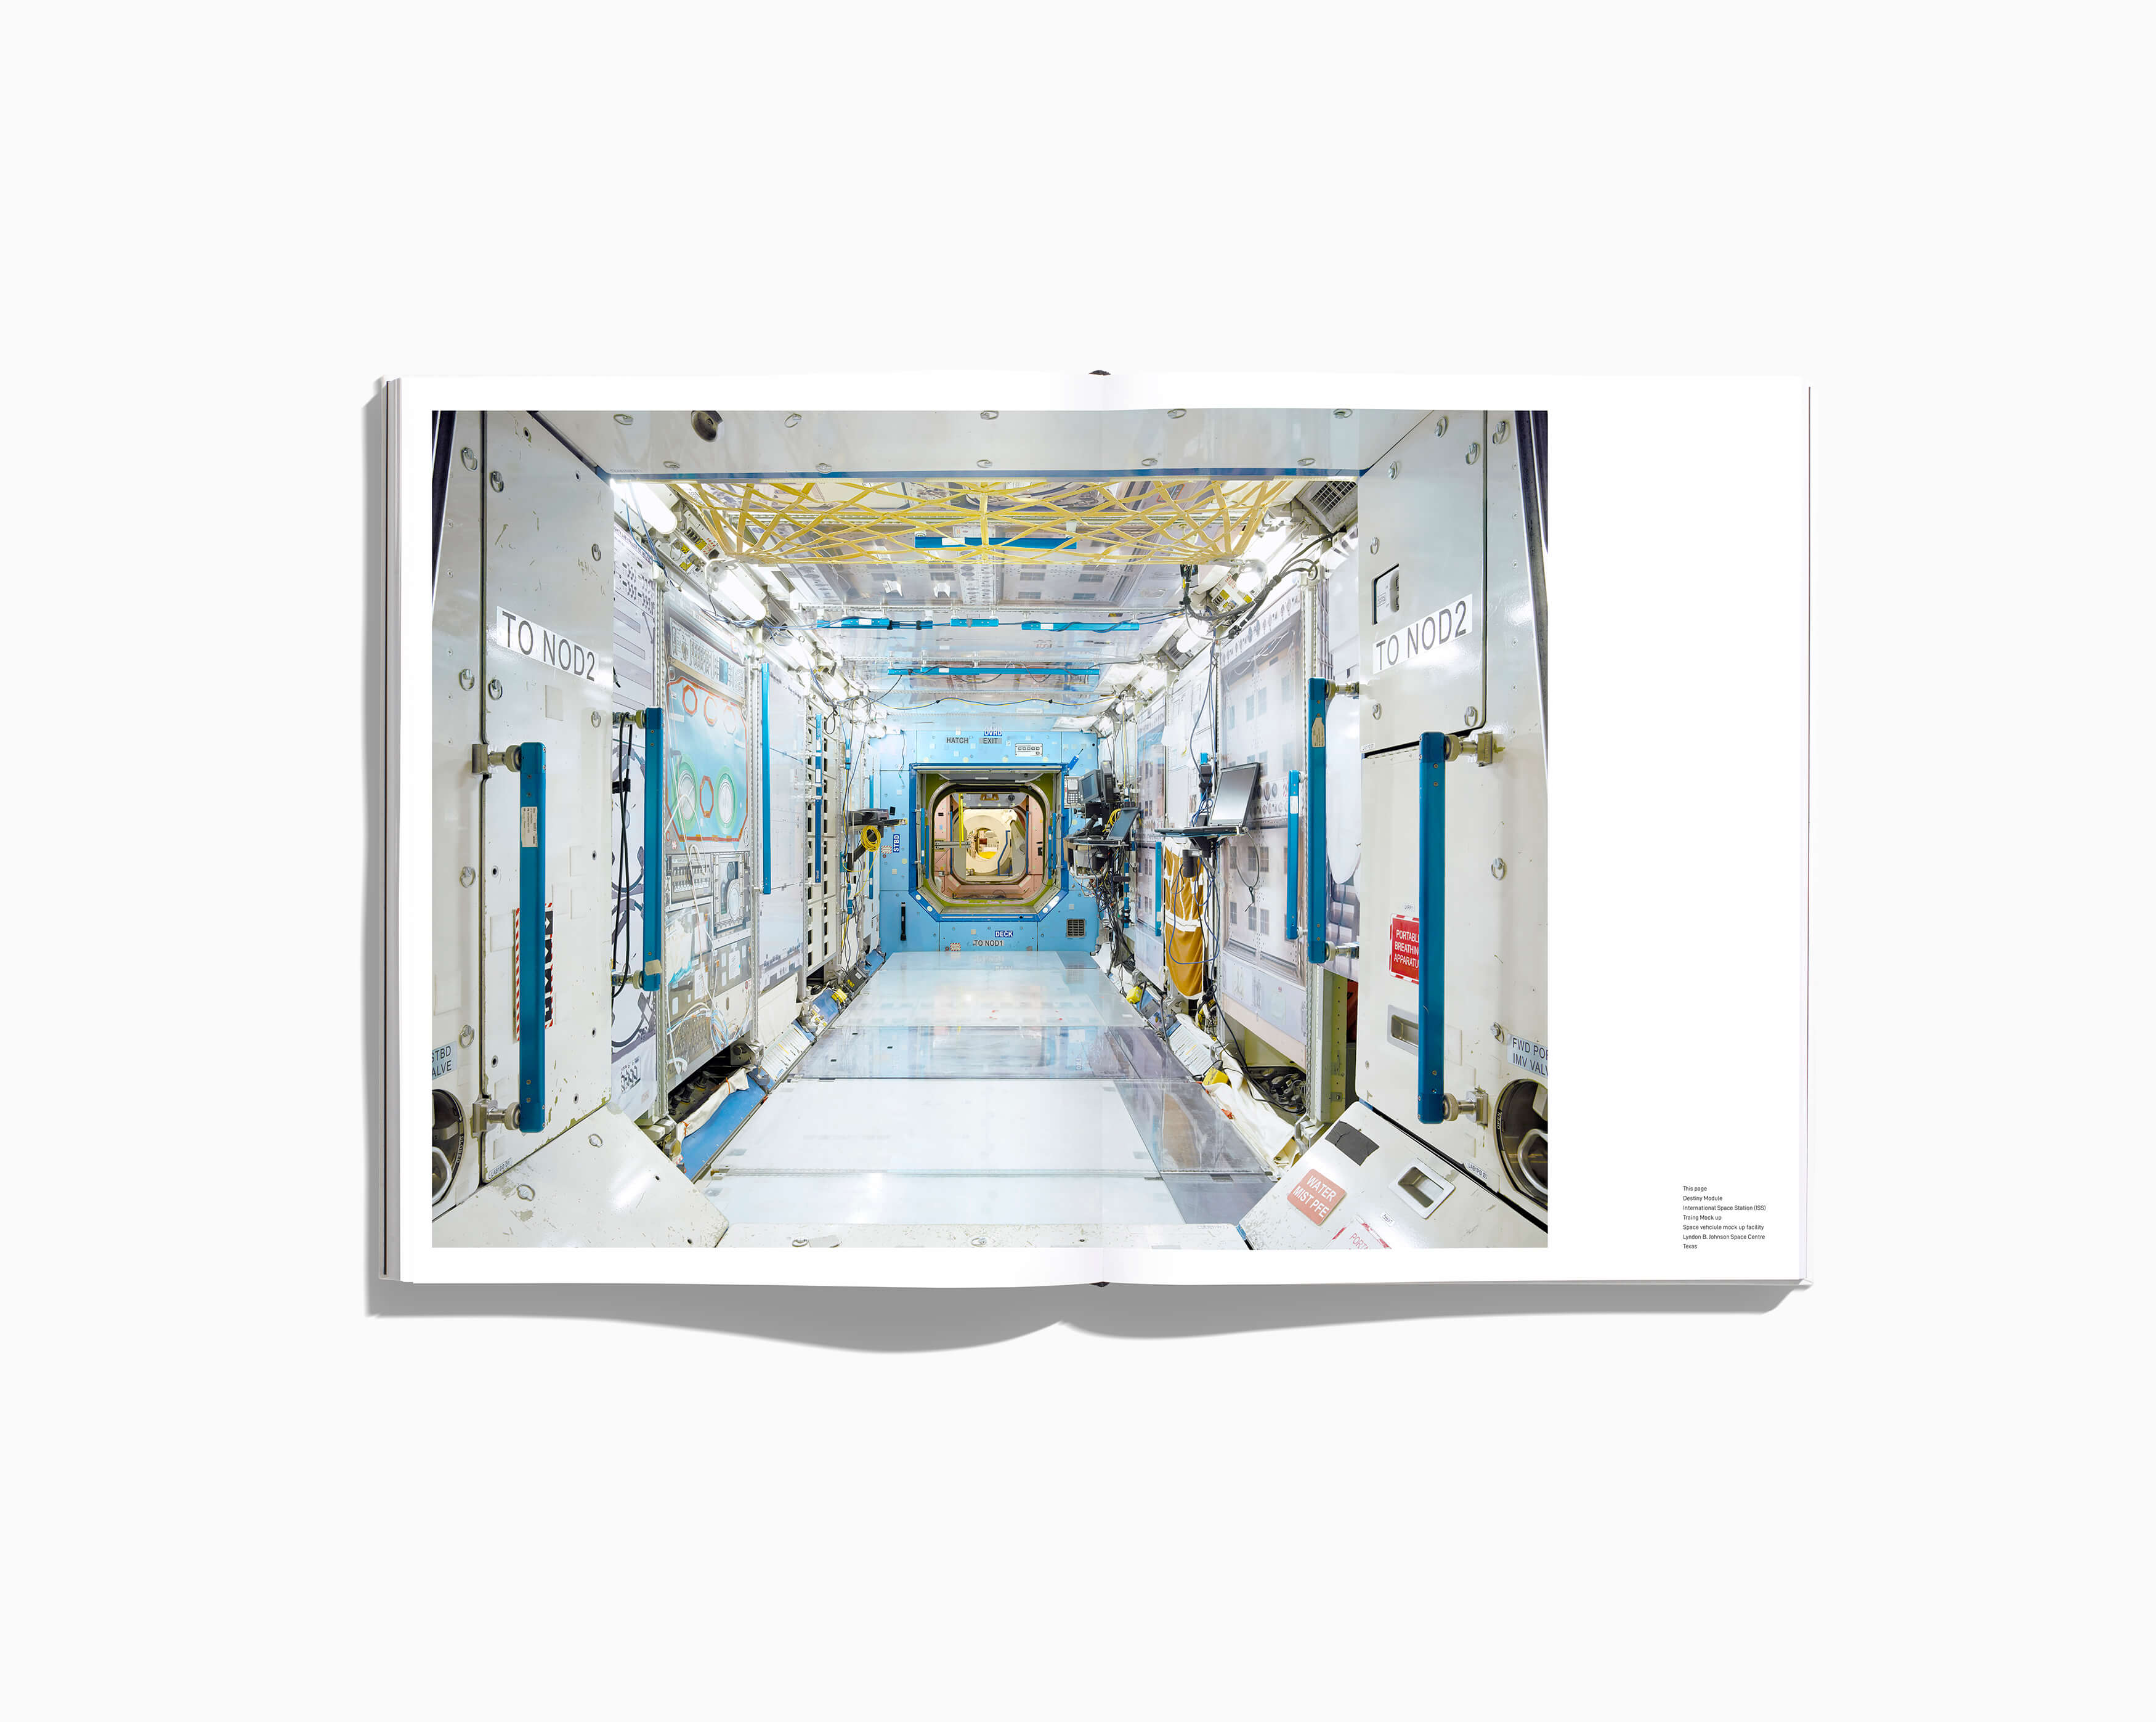 NASA PAST AND PRESET DREAMS OF THE FUTURE - DESTINY MODULE INTERNATIONAL SPACE STATION (ISS) TRAINER BOOK SPREAD